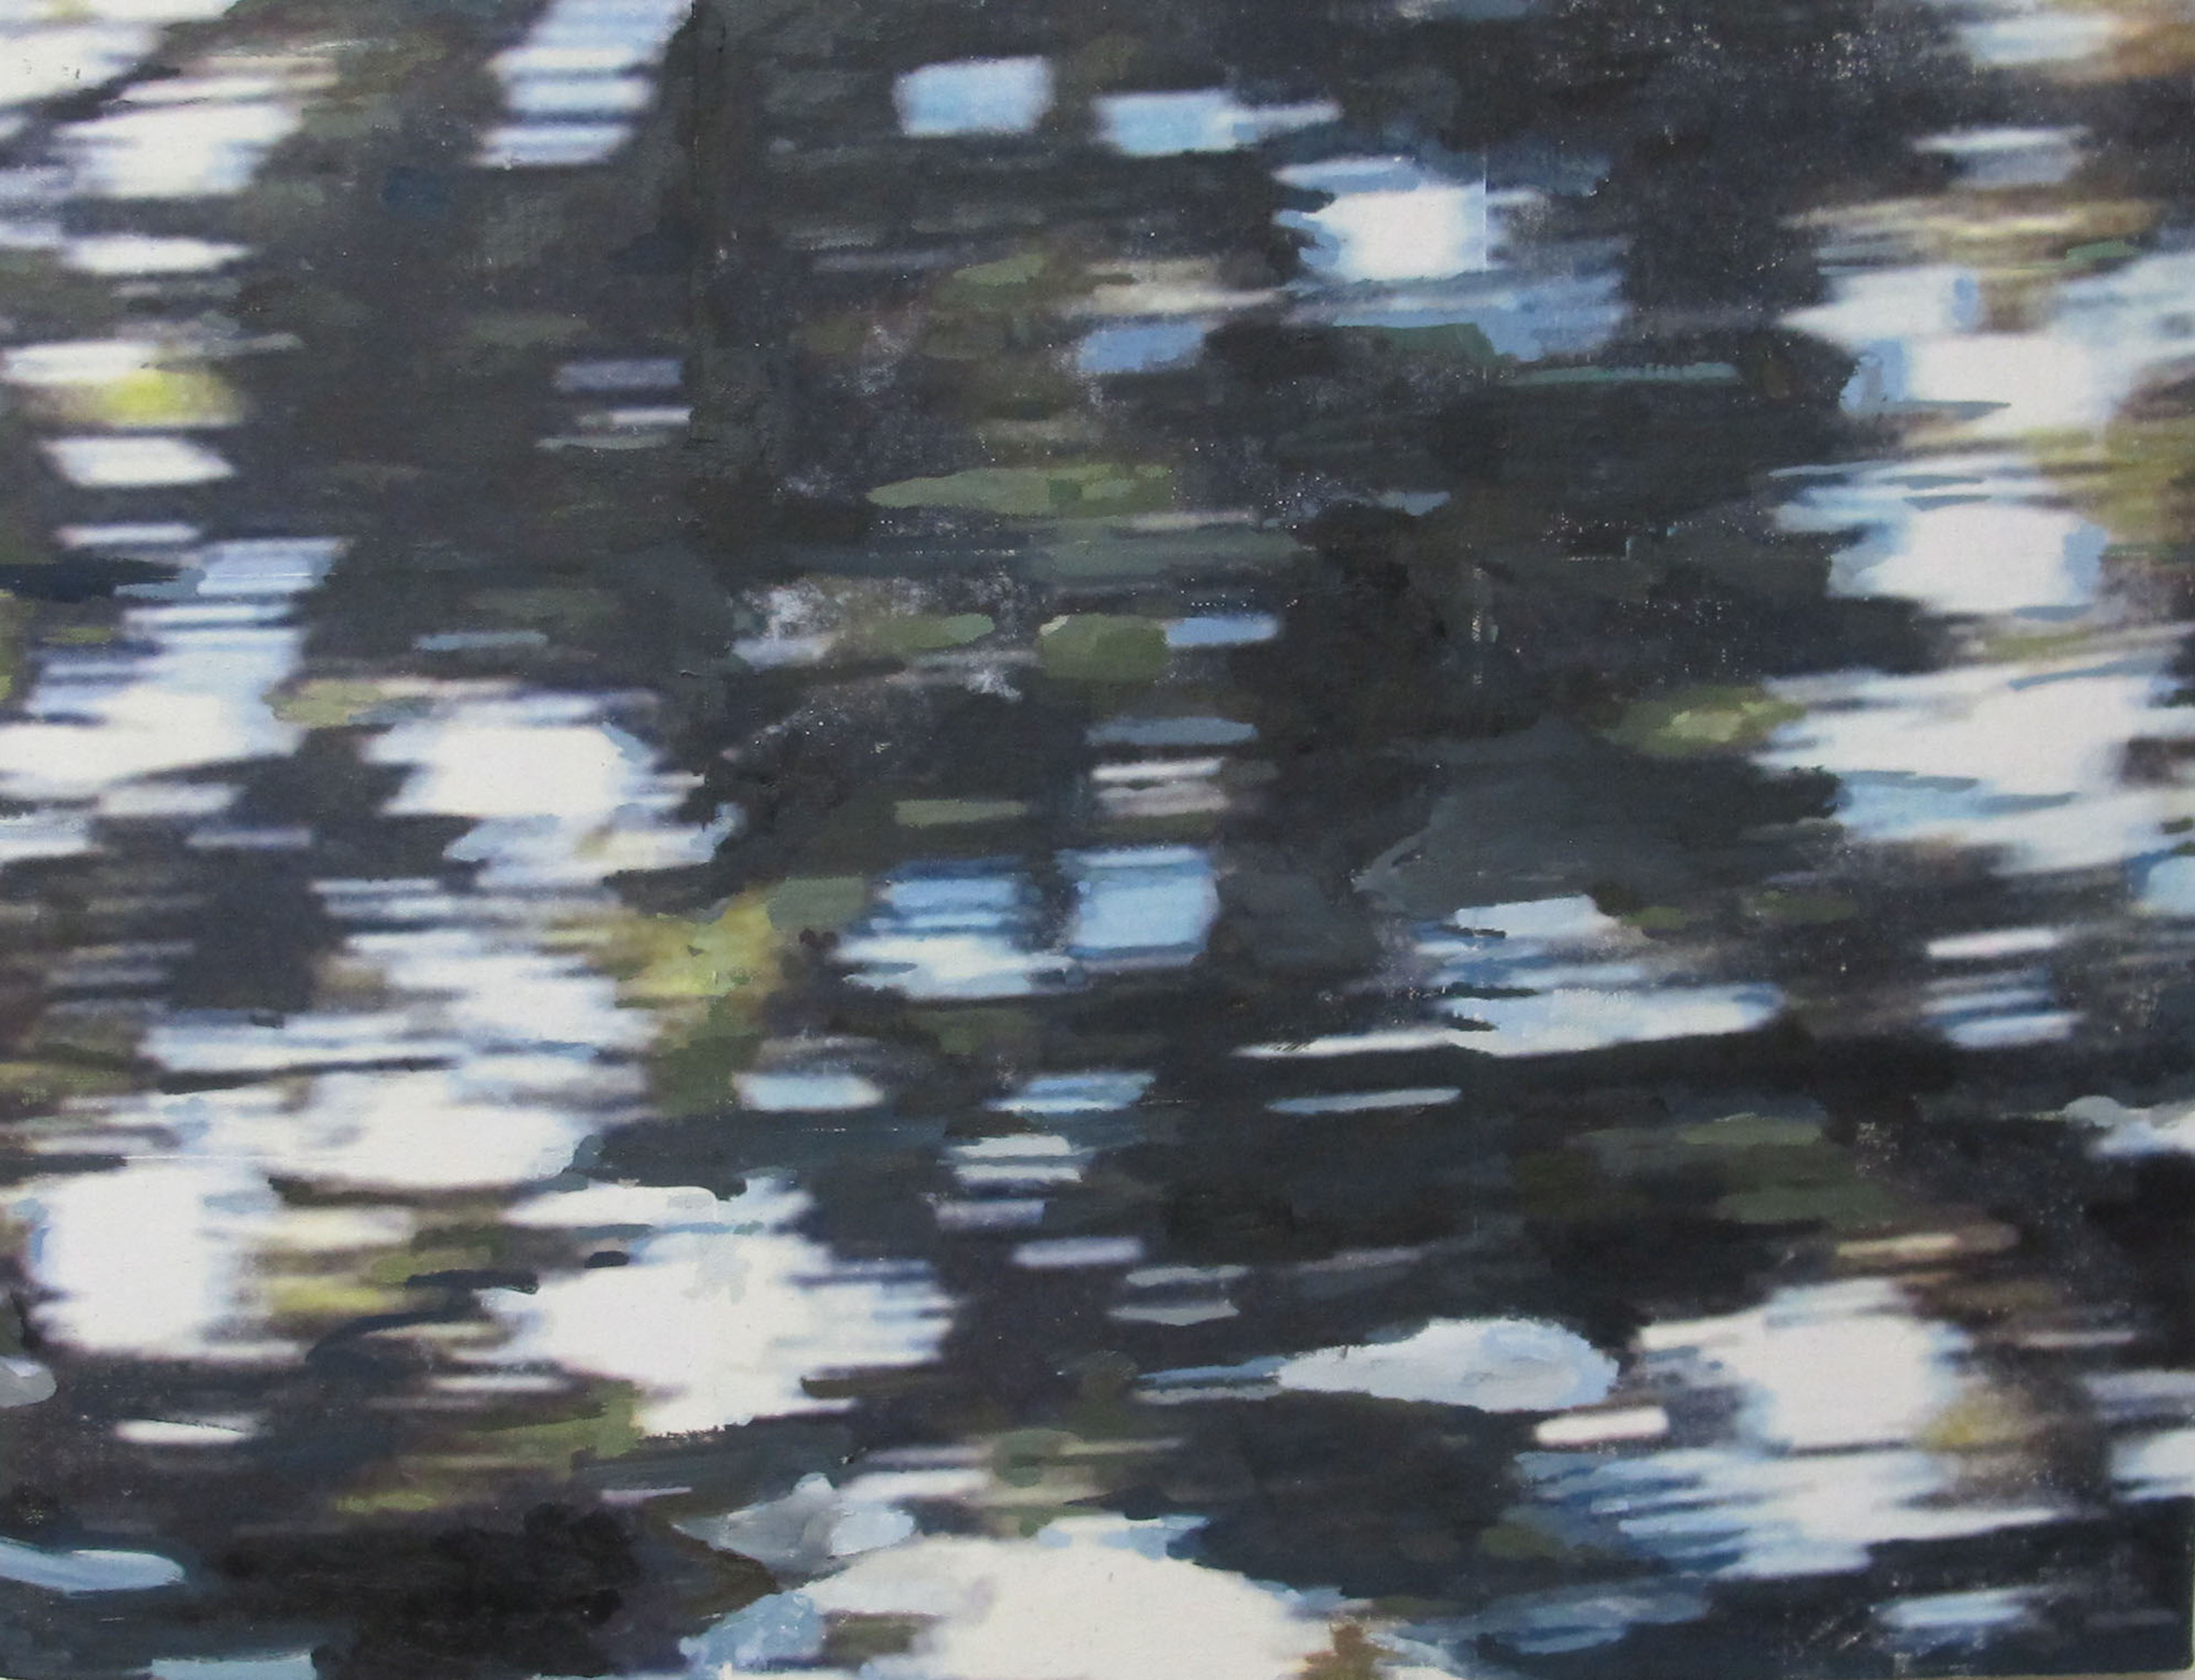 Alex Schuchard Untitled No. 4, 2013 Oil and wax on canvas over panel 18 x 24 inches